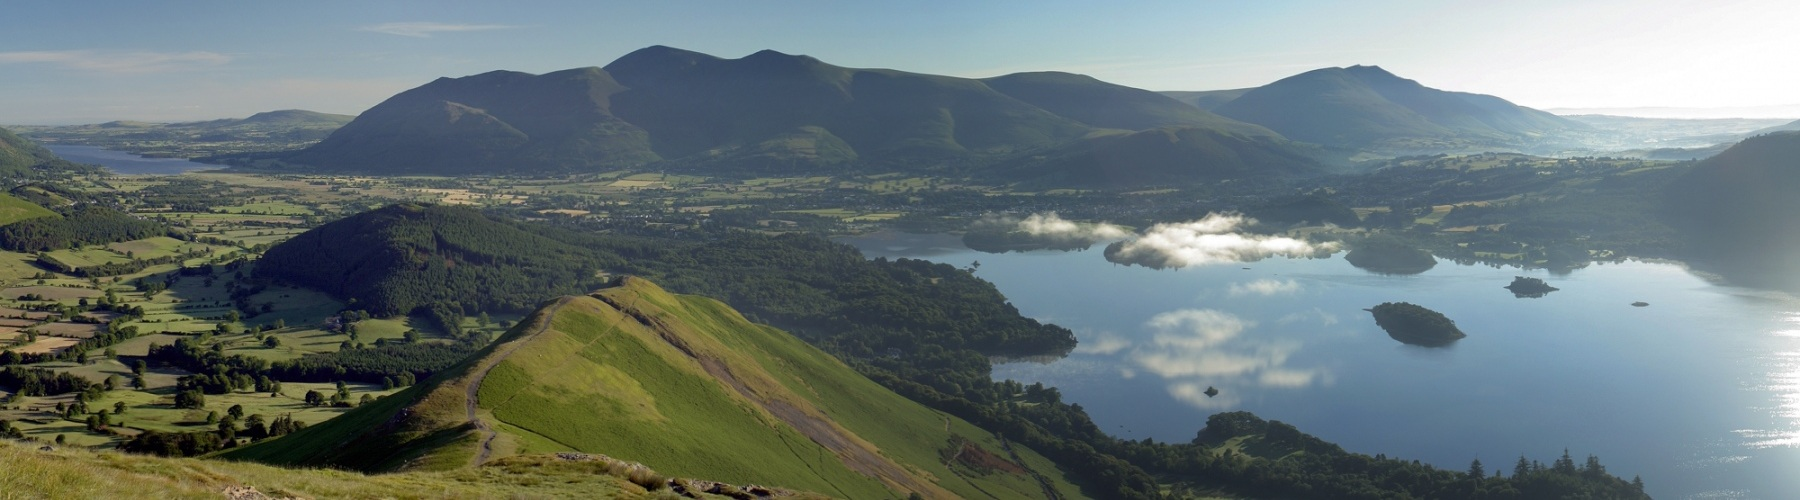 P0026-Summer-Sunrise-from-Catbells-looking-over-Derwent-Water